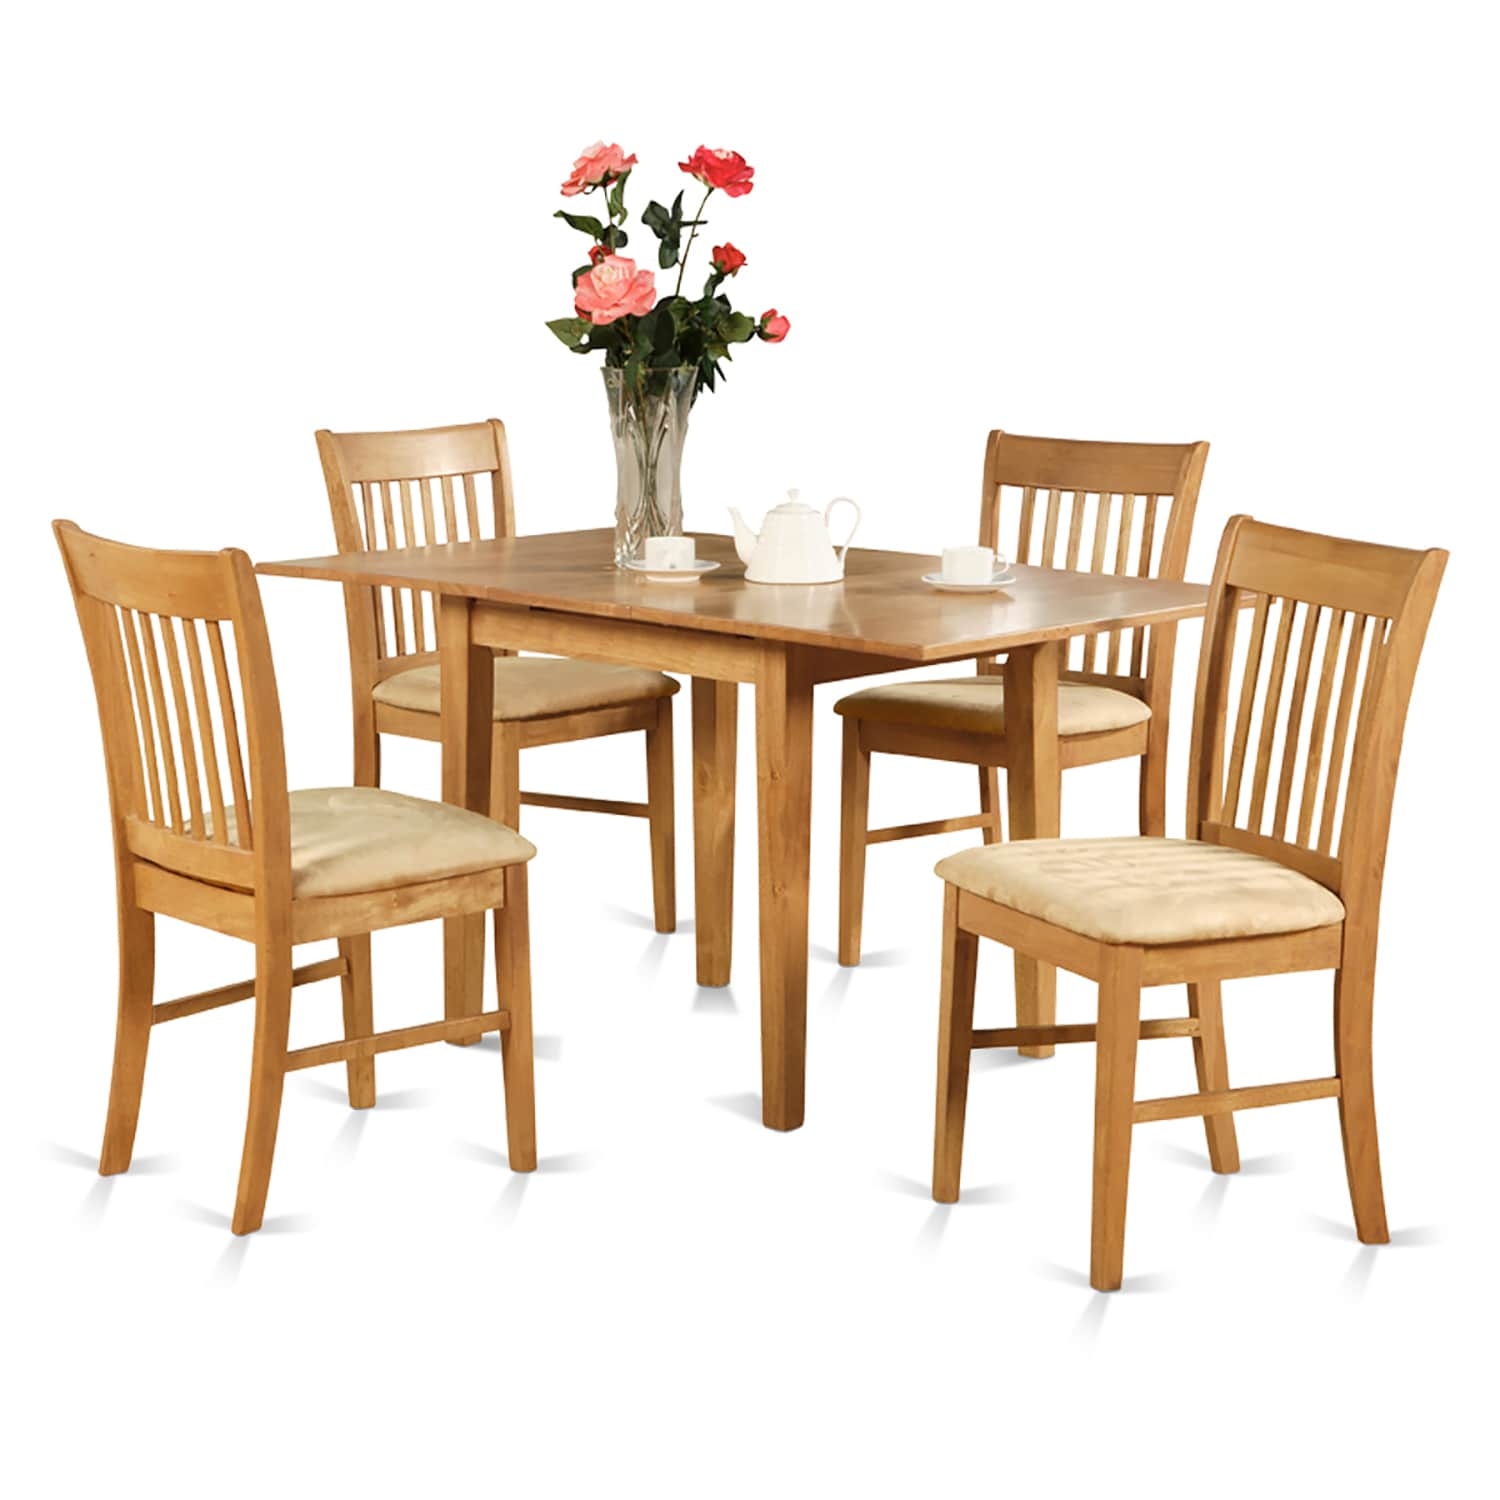 Dinet Set: East West Furniture Oak Dinette Table With 12-inch Leaf